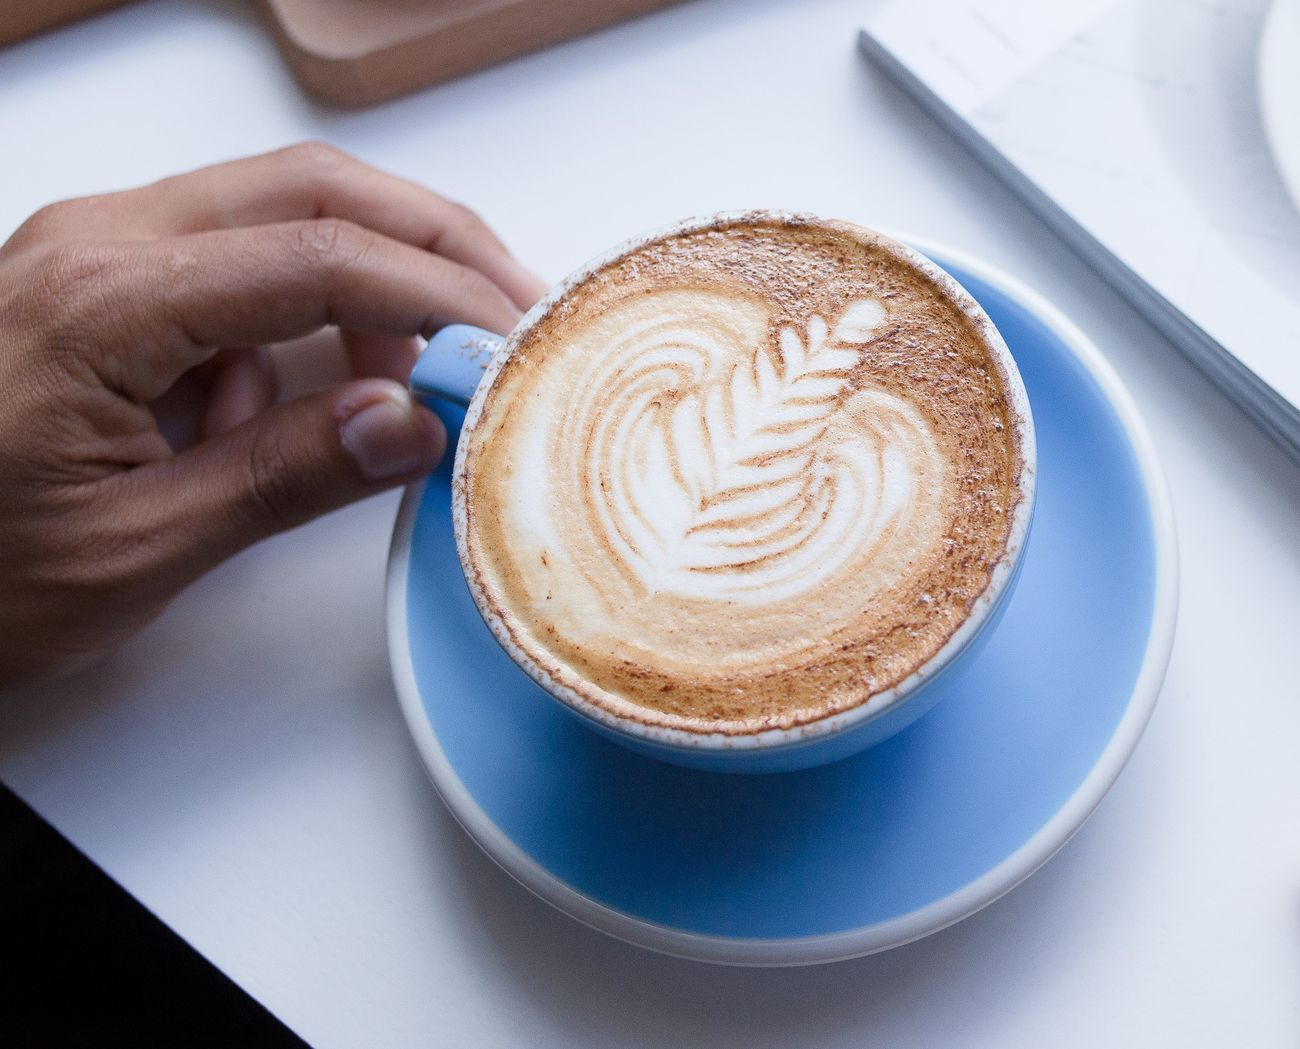 Blue Color Cappuccino Close-up Coffee - Drink Coffee Cup Day Drink Food And Drink Freshness Froth Art Frothy Drink Holding Human Body Part Human Hand Indoors  Latte Latte Morning One Person Real People Refreshment Saucer Table White Background